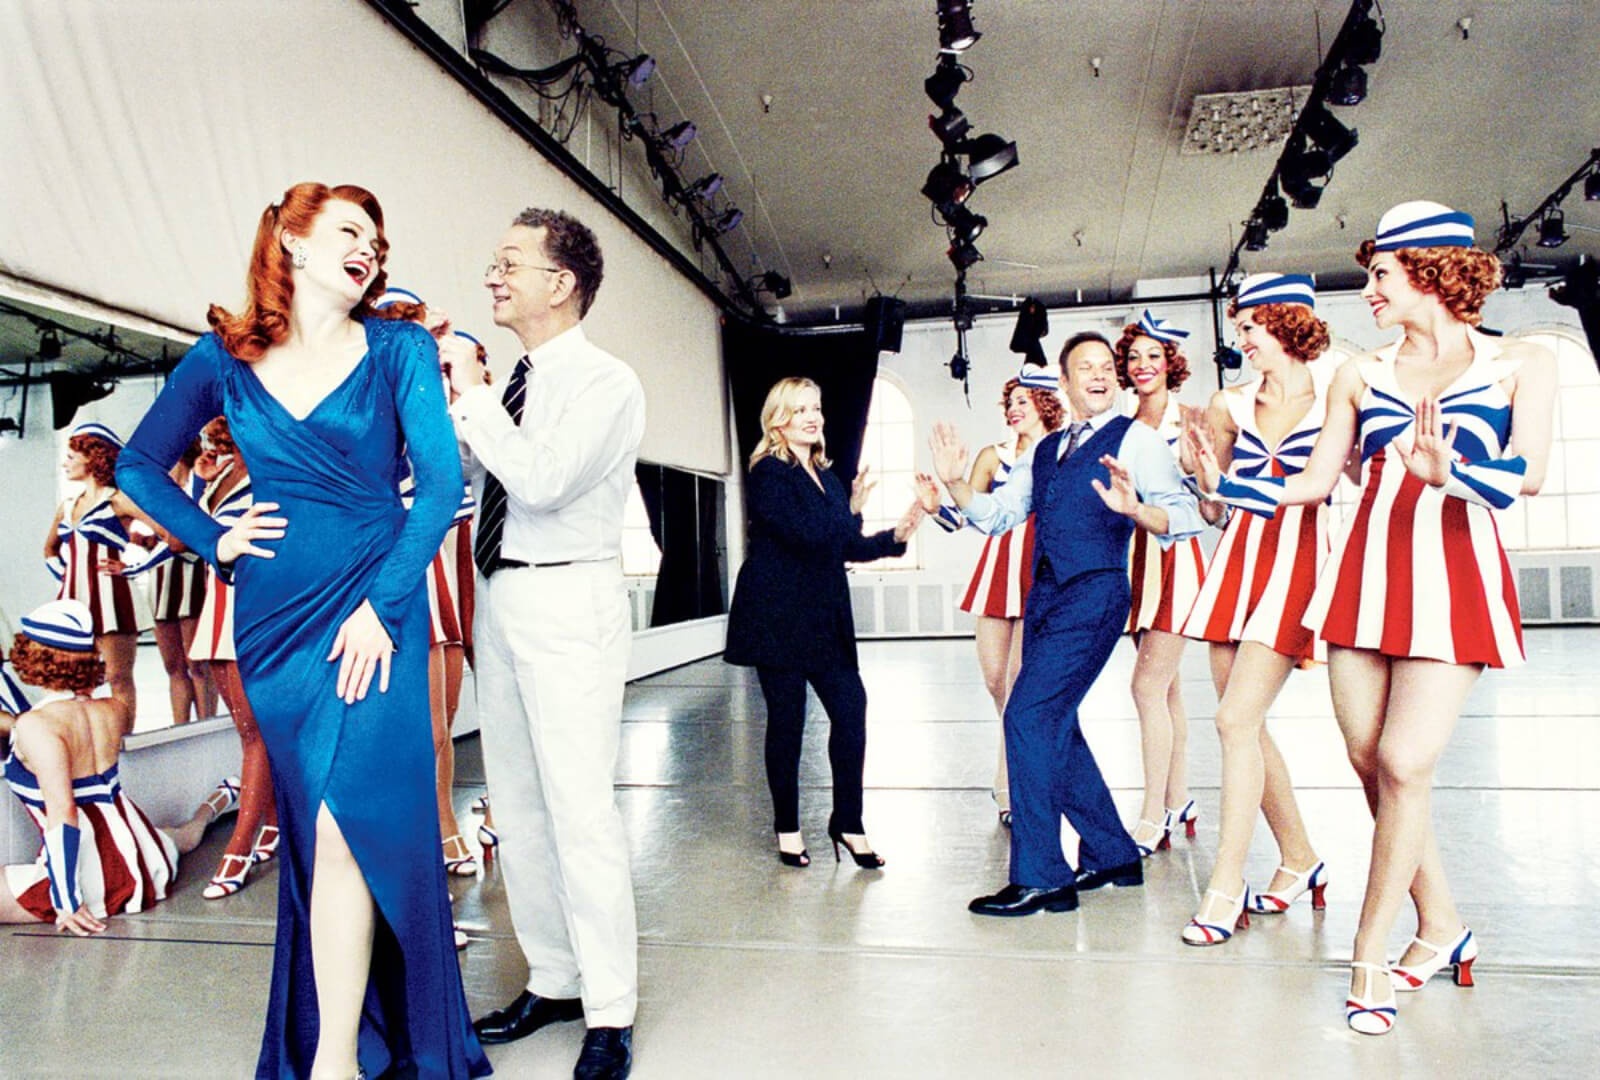 """Kate Baldwin, Costume Designer William Ivey Long, Susan Stroman and Norbert Leo Butz in a photo shoot for Vanity Fair. The cast is wearing their USO costumes from """"Red, White and True""""."""